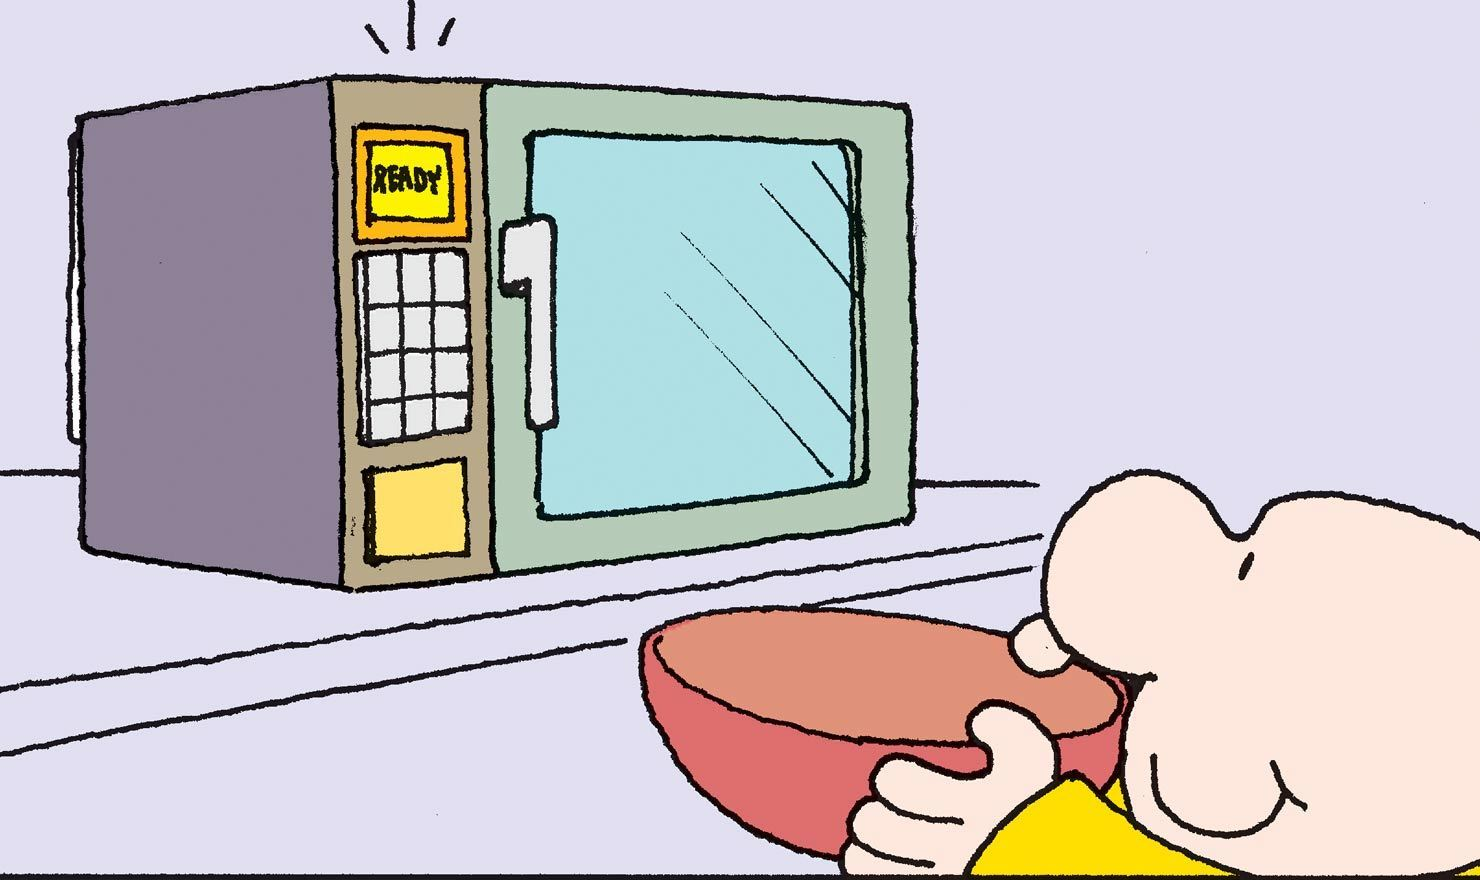 10 Microwave Day Comics That Will (Mostly) Warm You Heart And Soul